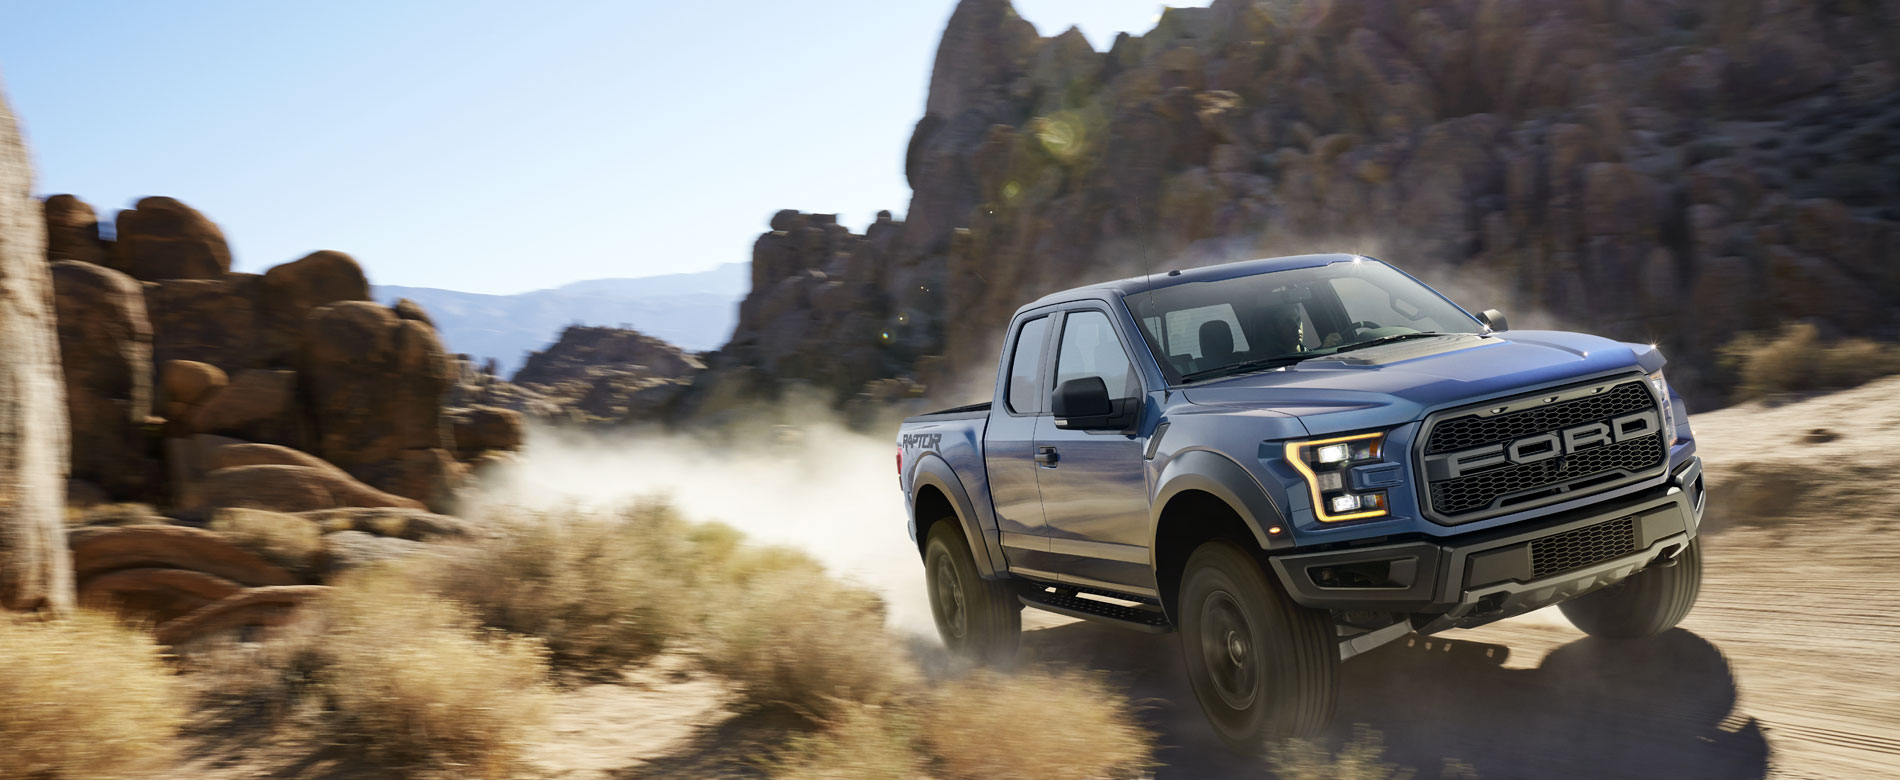 2017 ford raptor in the desert